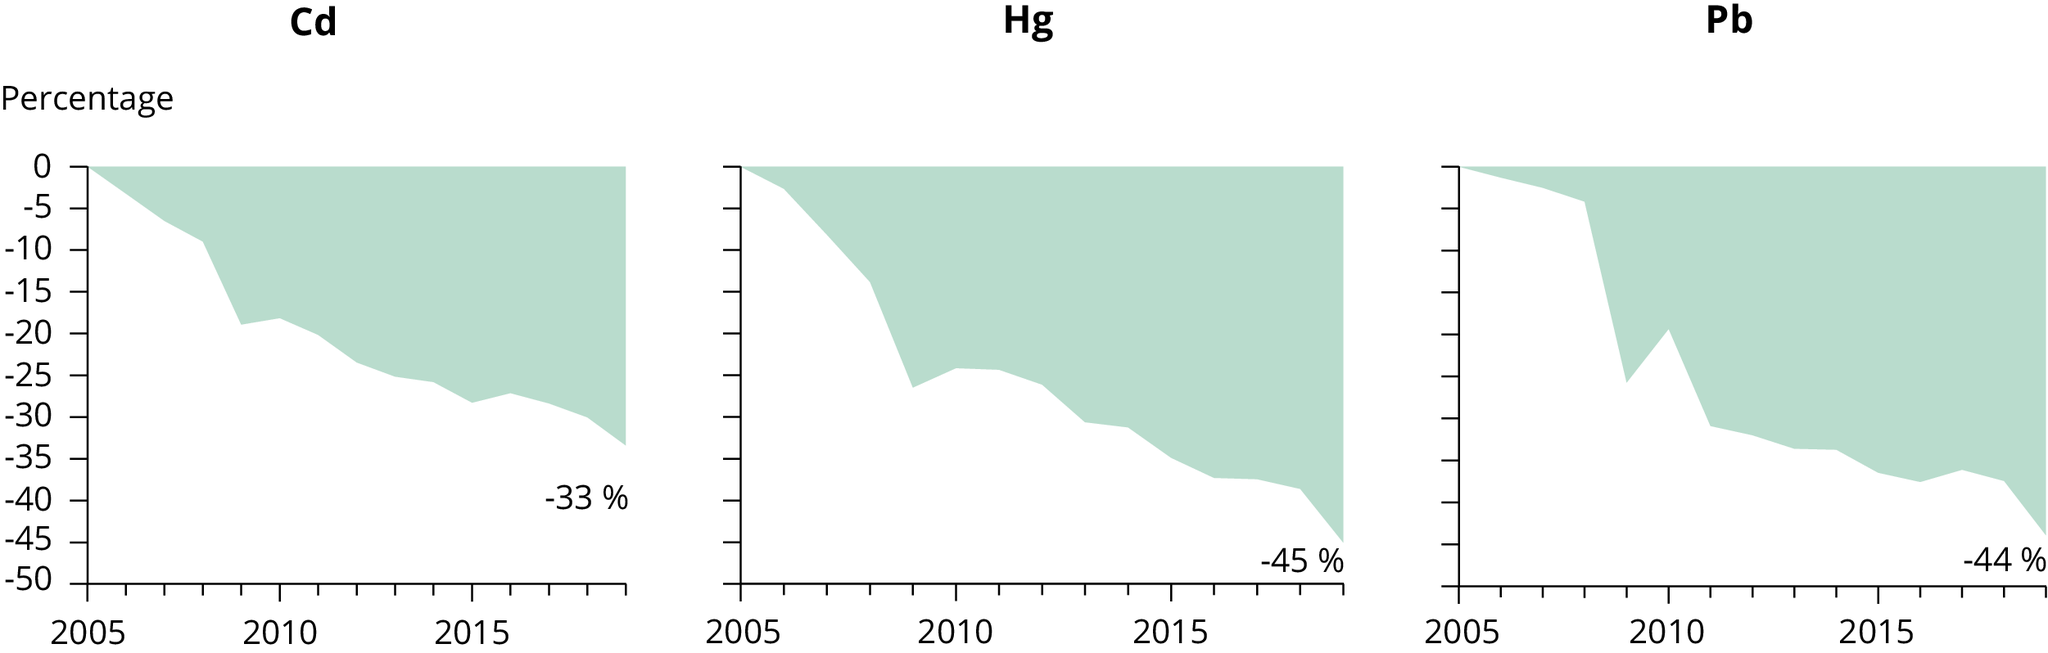 Percentage emission reductions in 2019 of primary heavy metals compared with 2005 levels